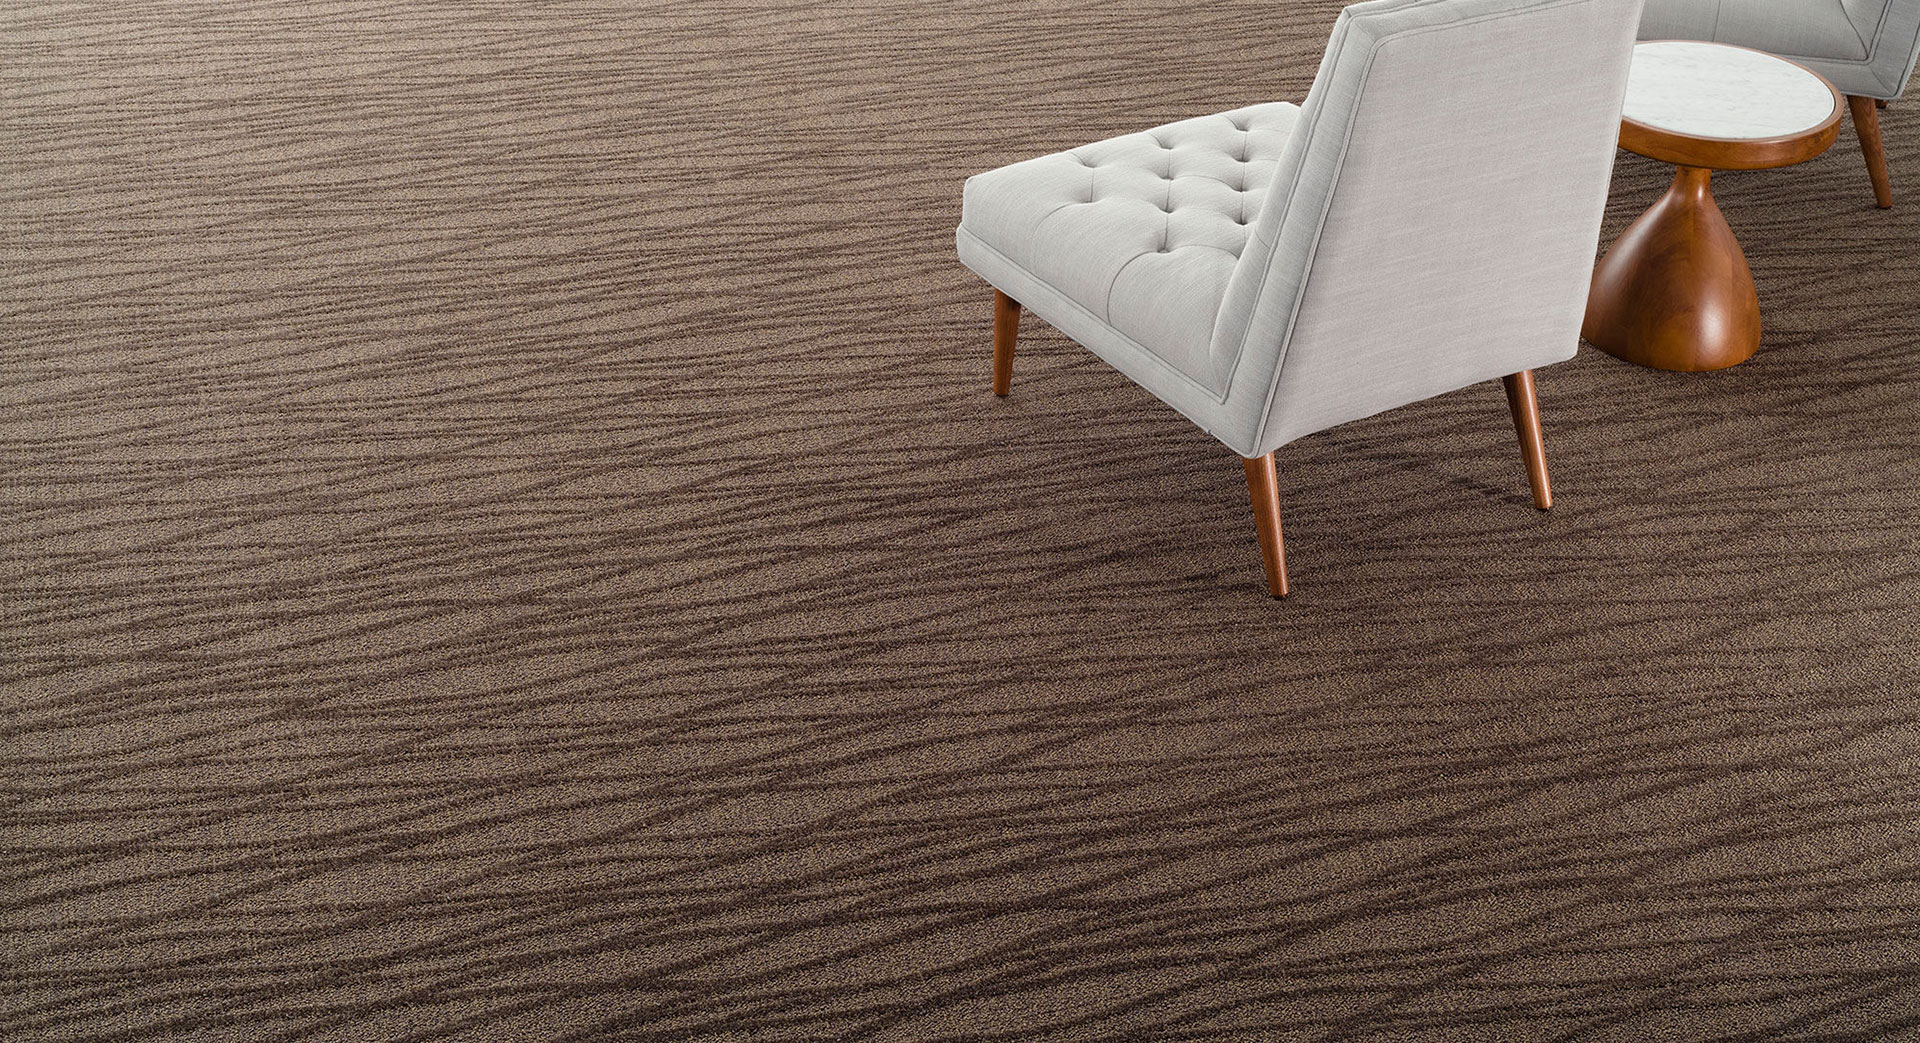 commercial carpet professional looking commercial carpets DQHAOHR